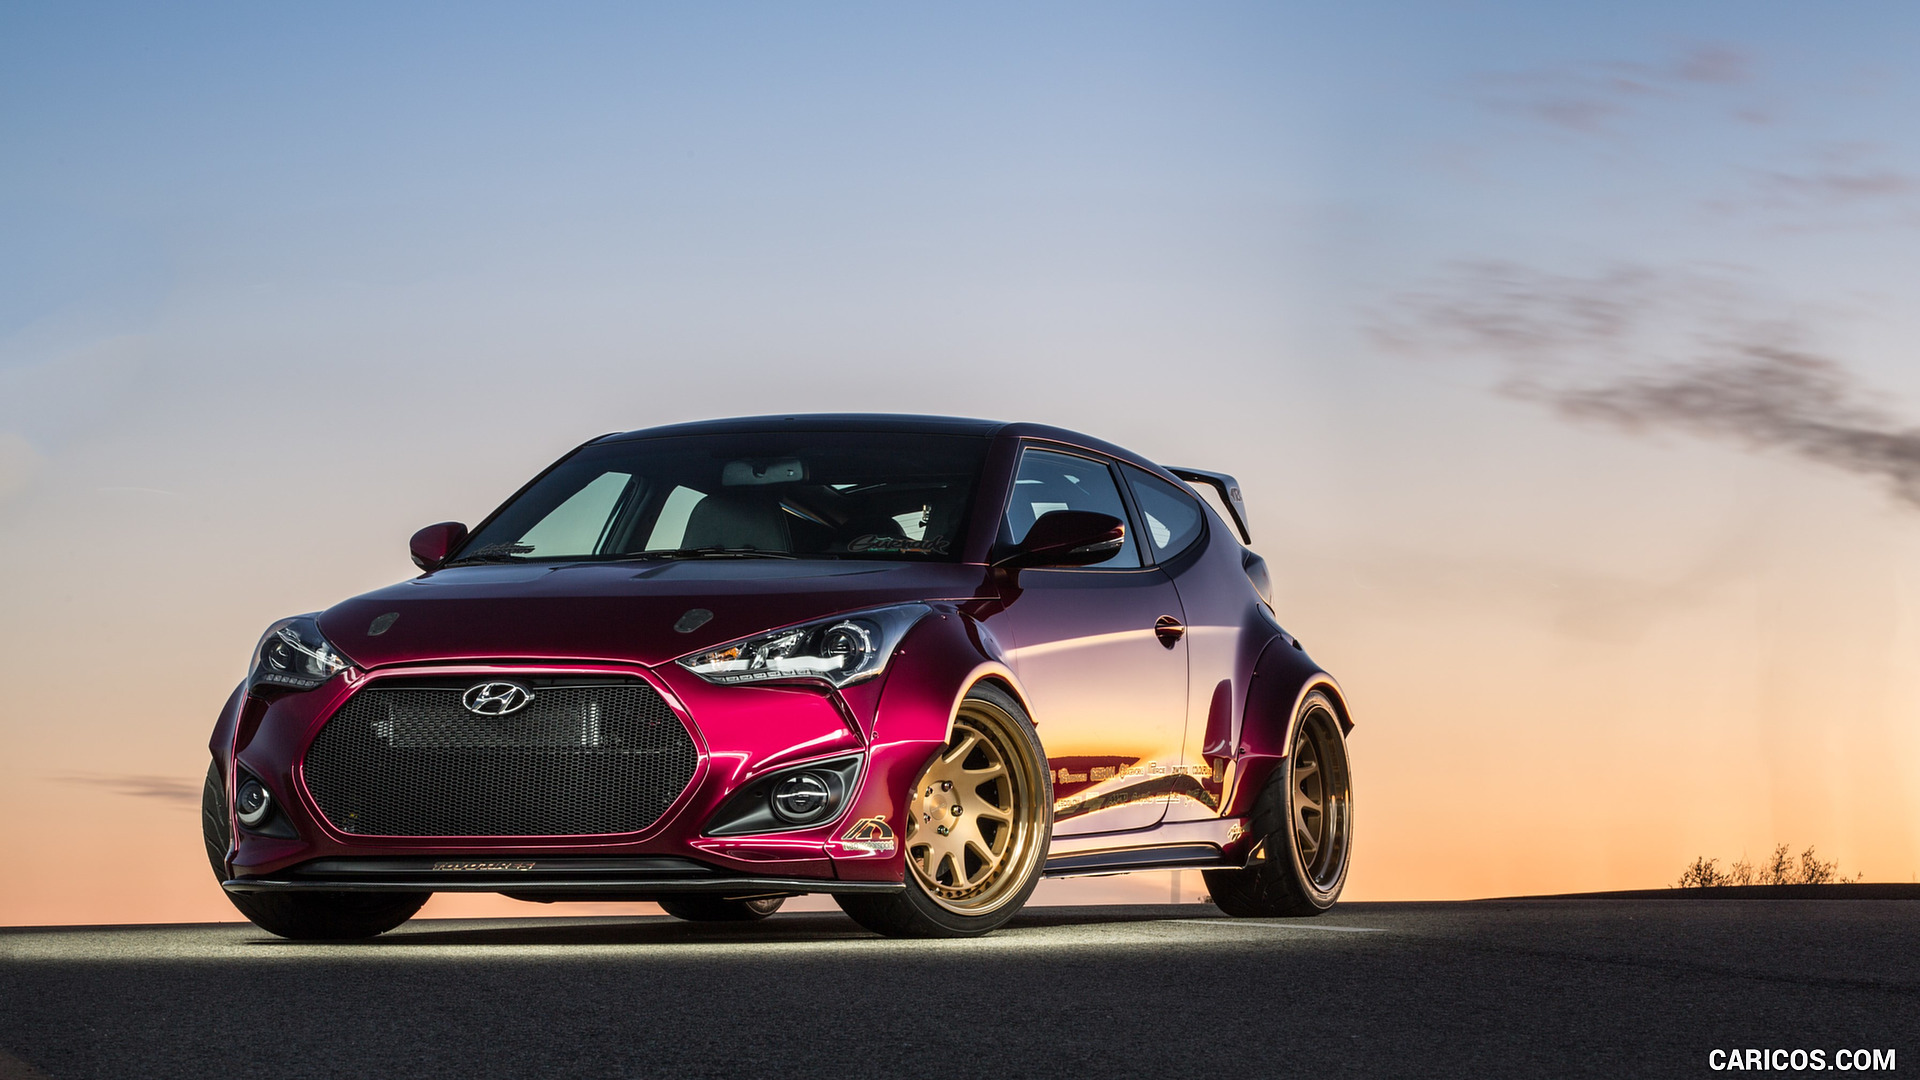 h side wallpaper cars veloster hyundai images hd turbo